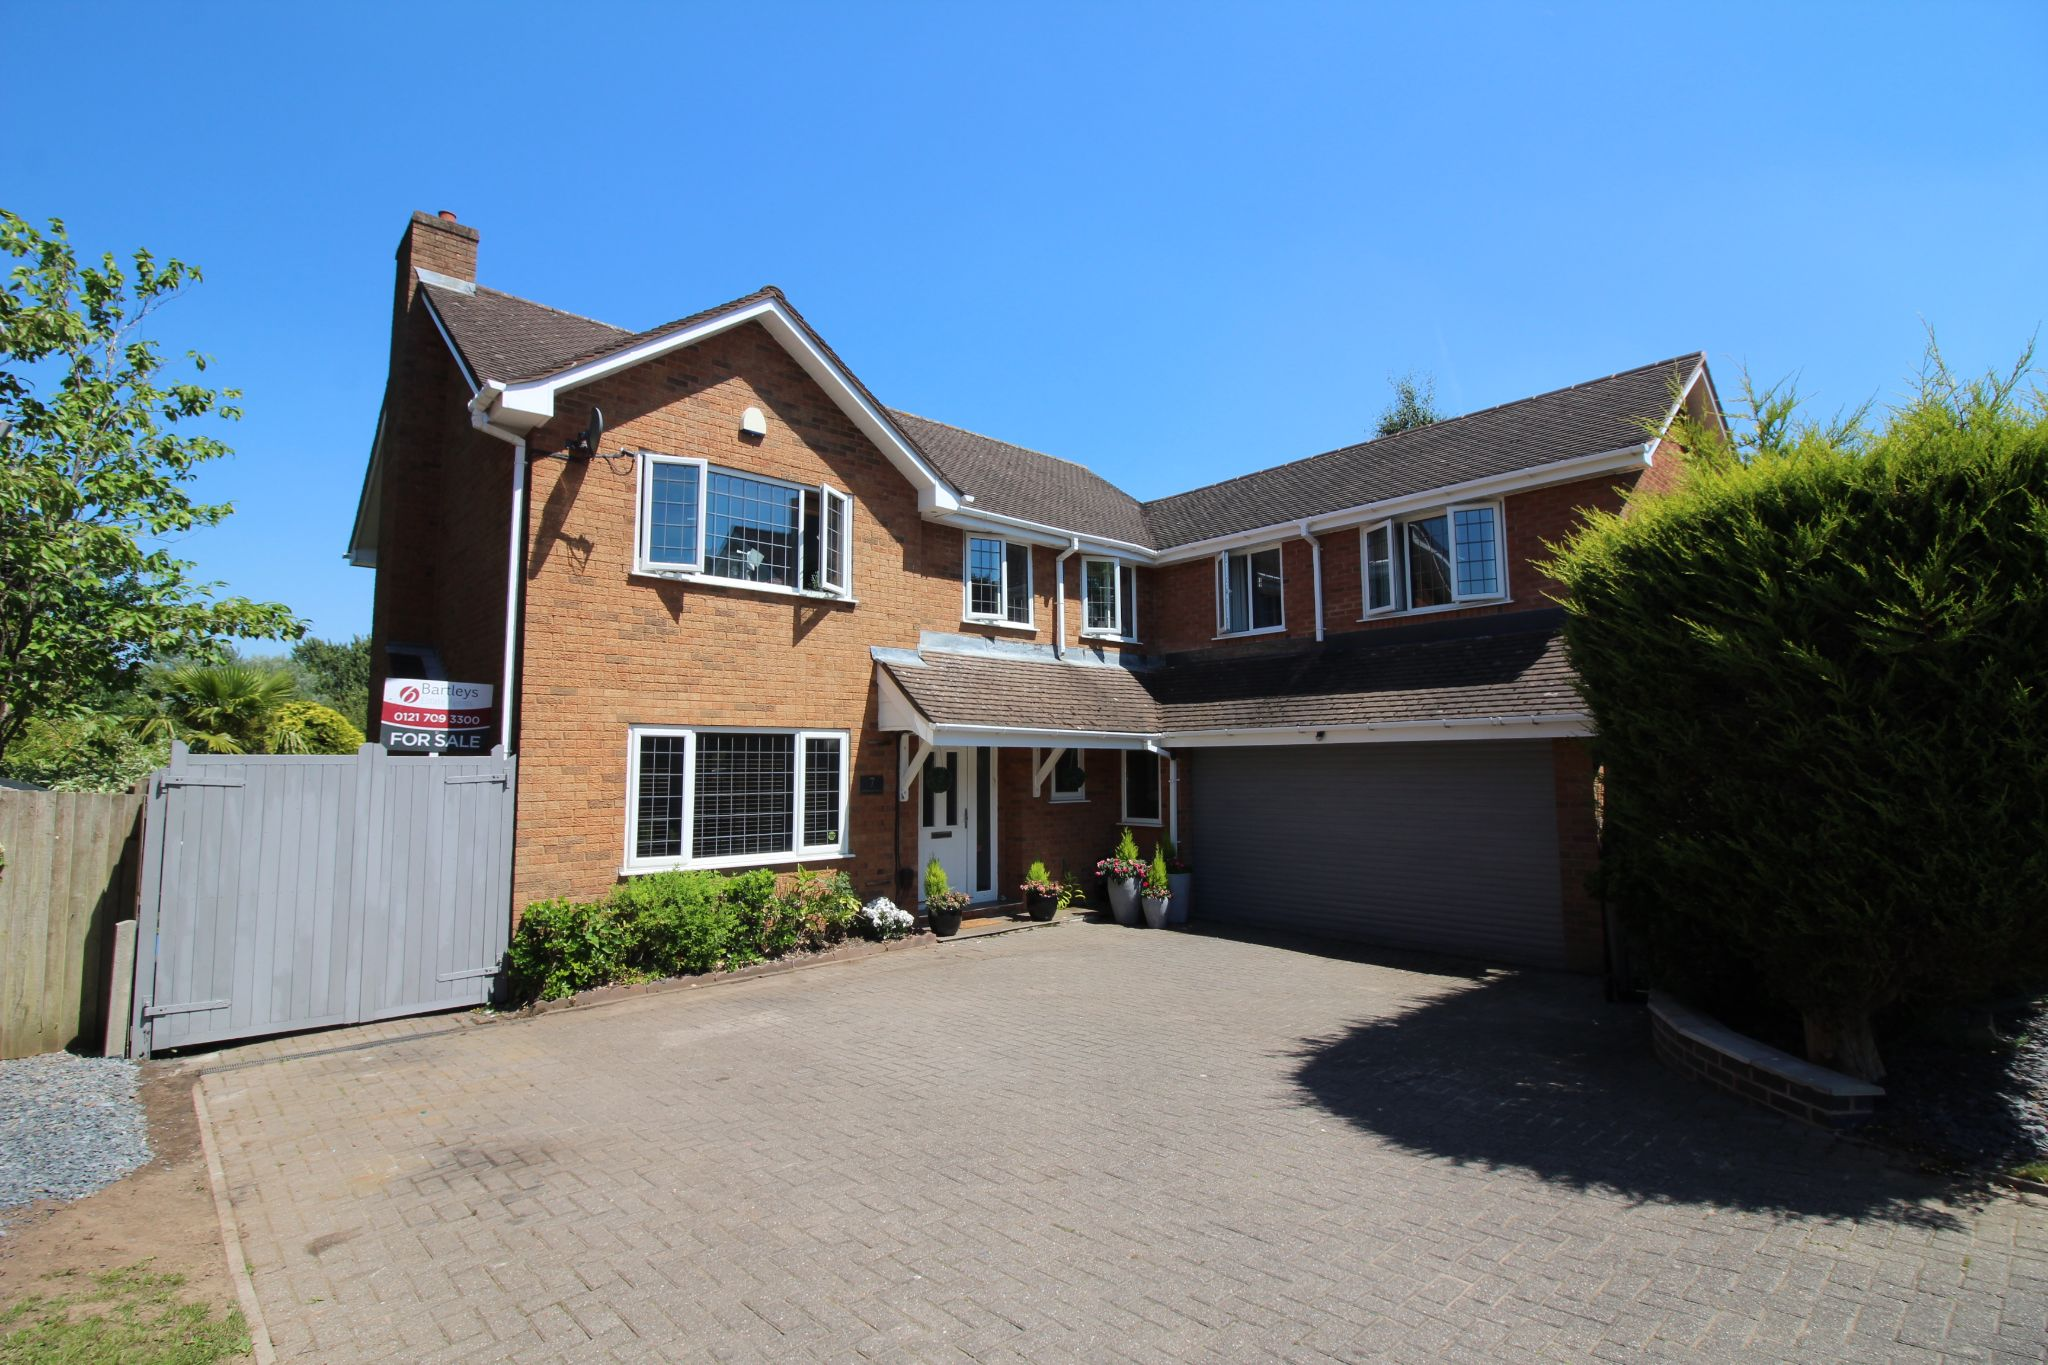 6 bedroom detached house For Sale in Solihull - Photograph 1.